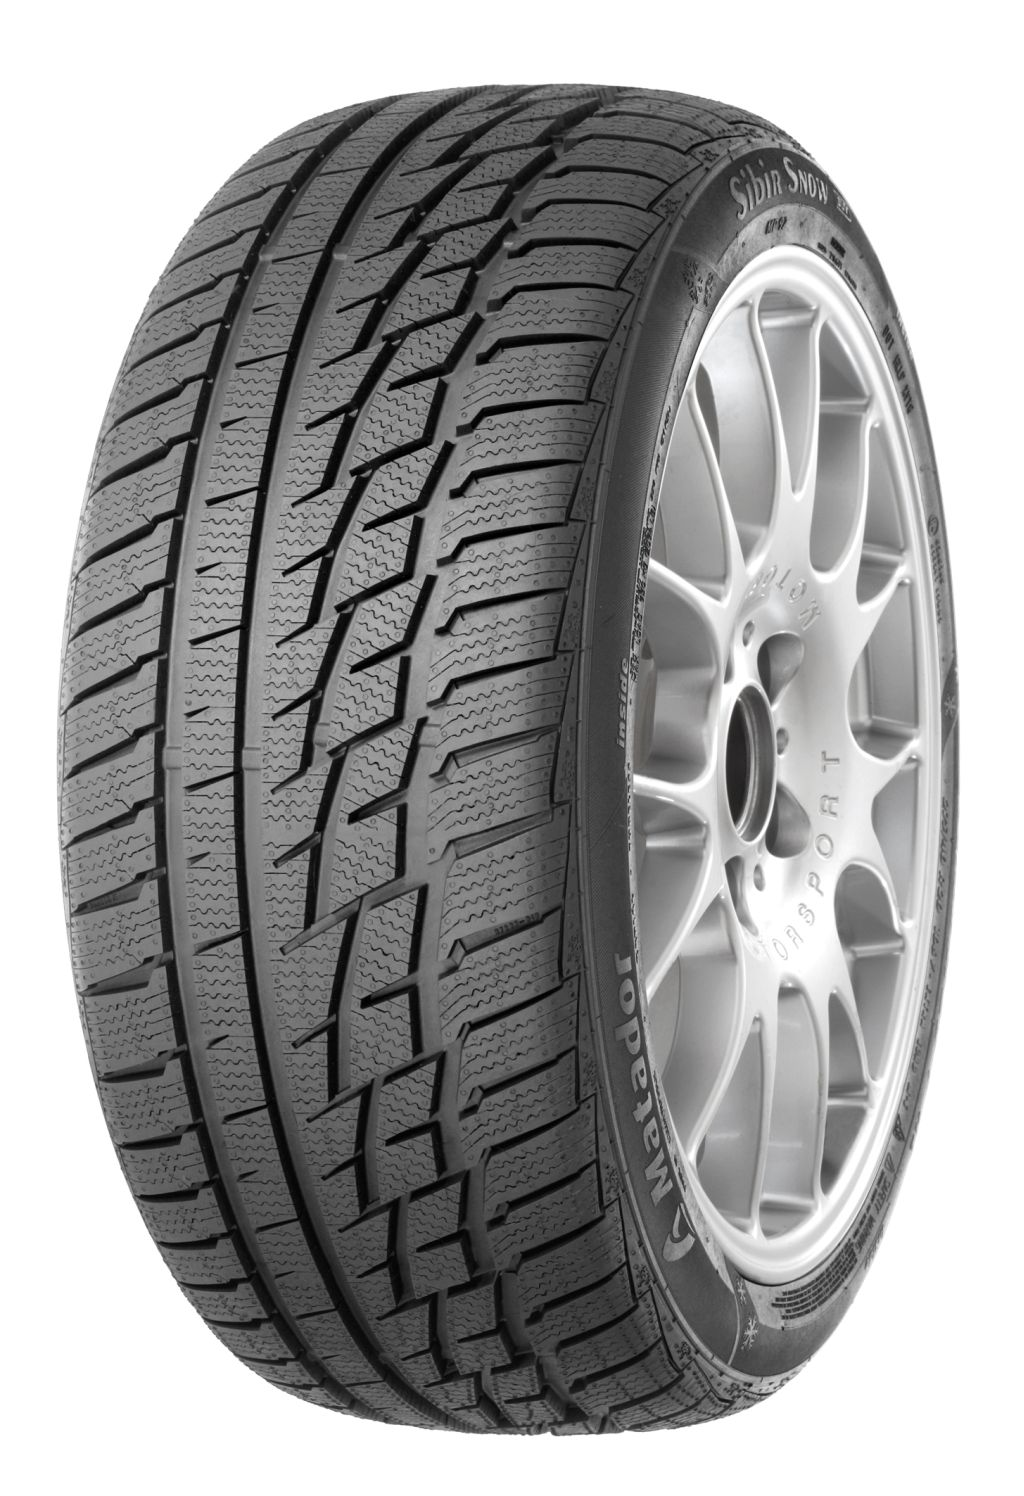 205/55R16 91H, Matador, MP92 Sibir Snow